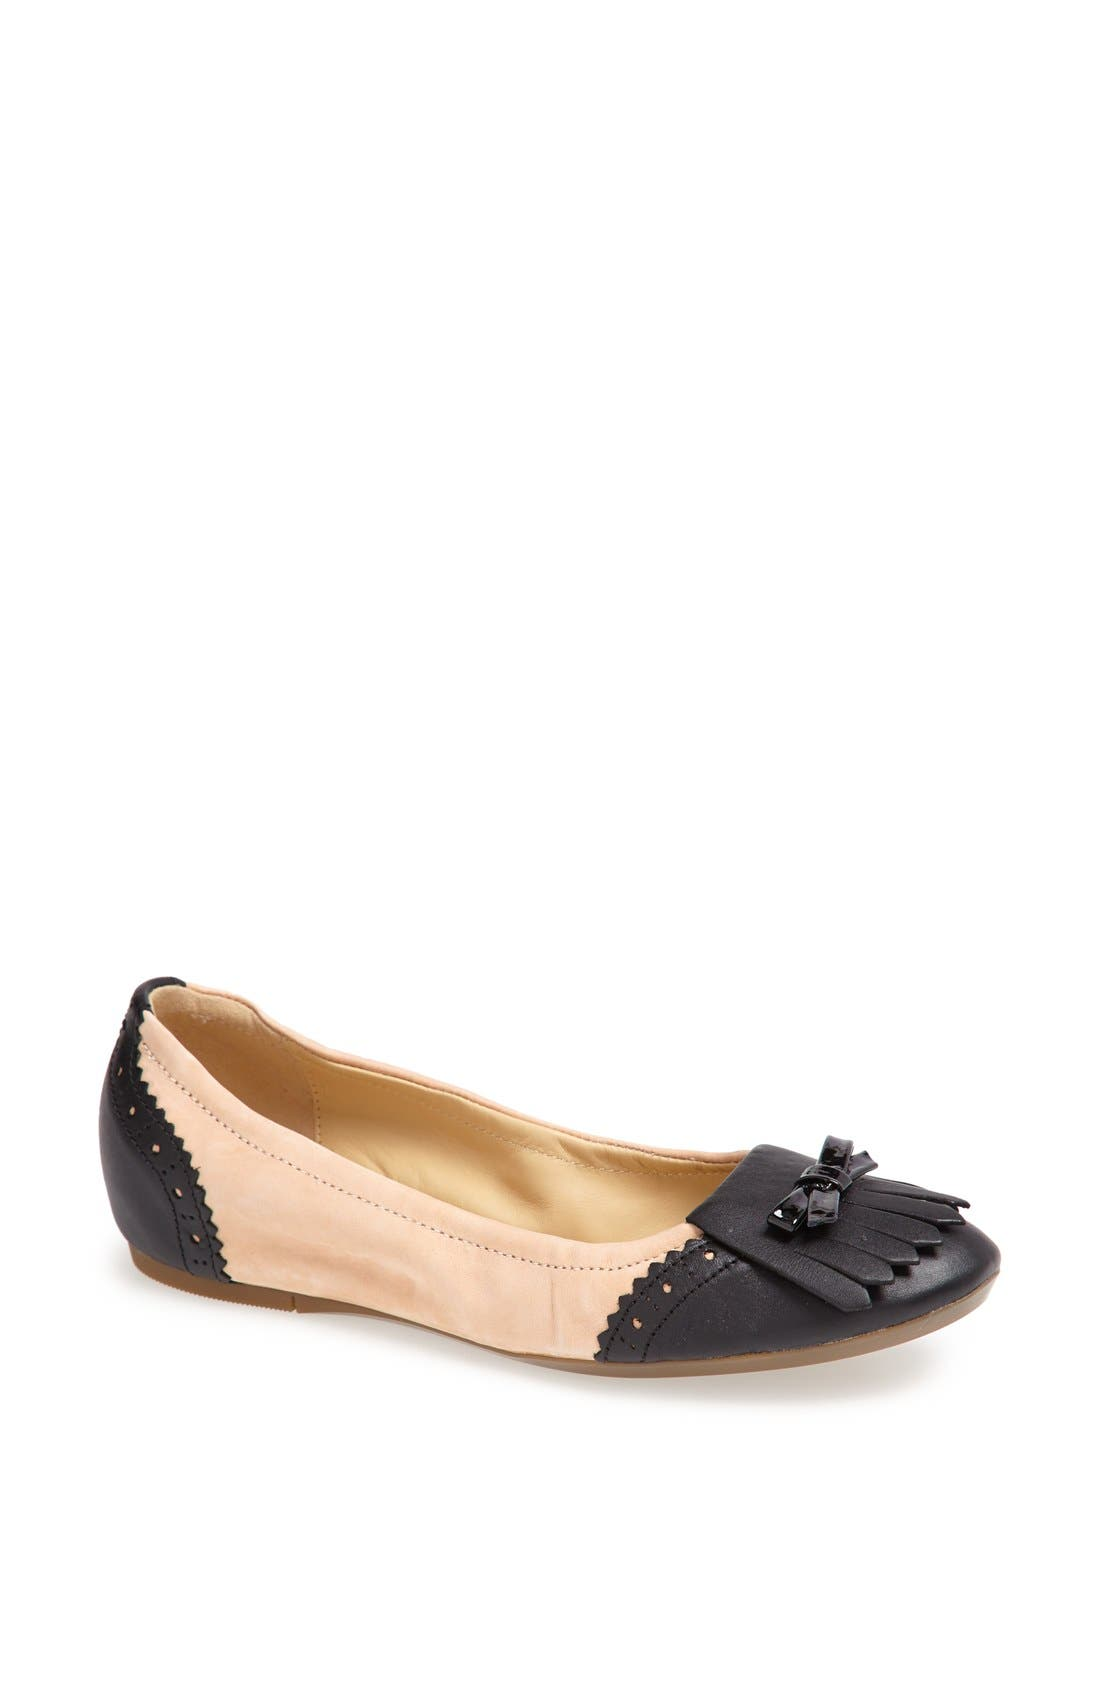 Main Image - Geox 'Karima' Leather Flat